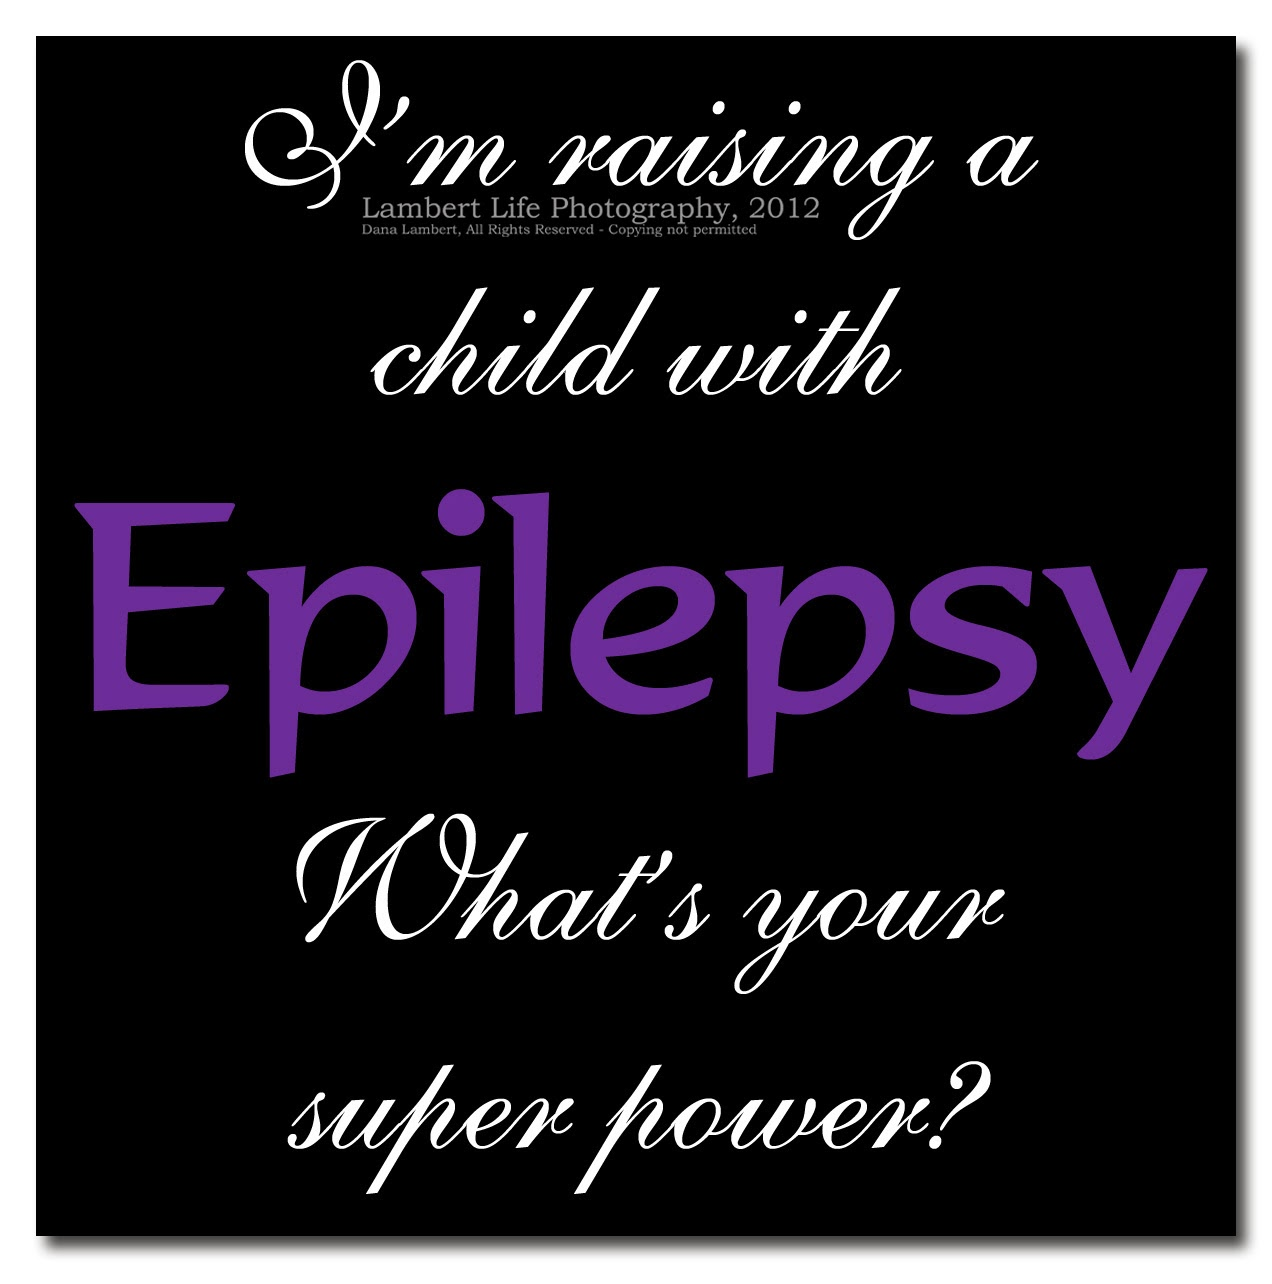 Quotes And Sayings: Epilepsy Quotes And Sayings. QuotesGram